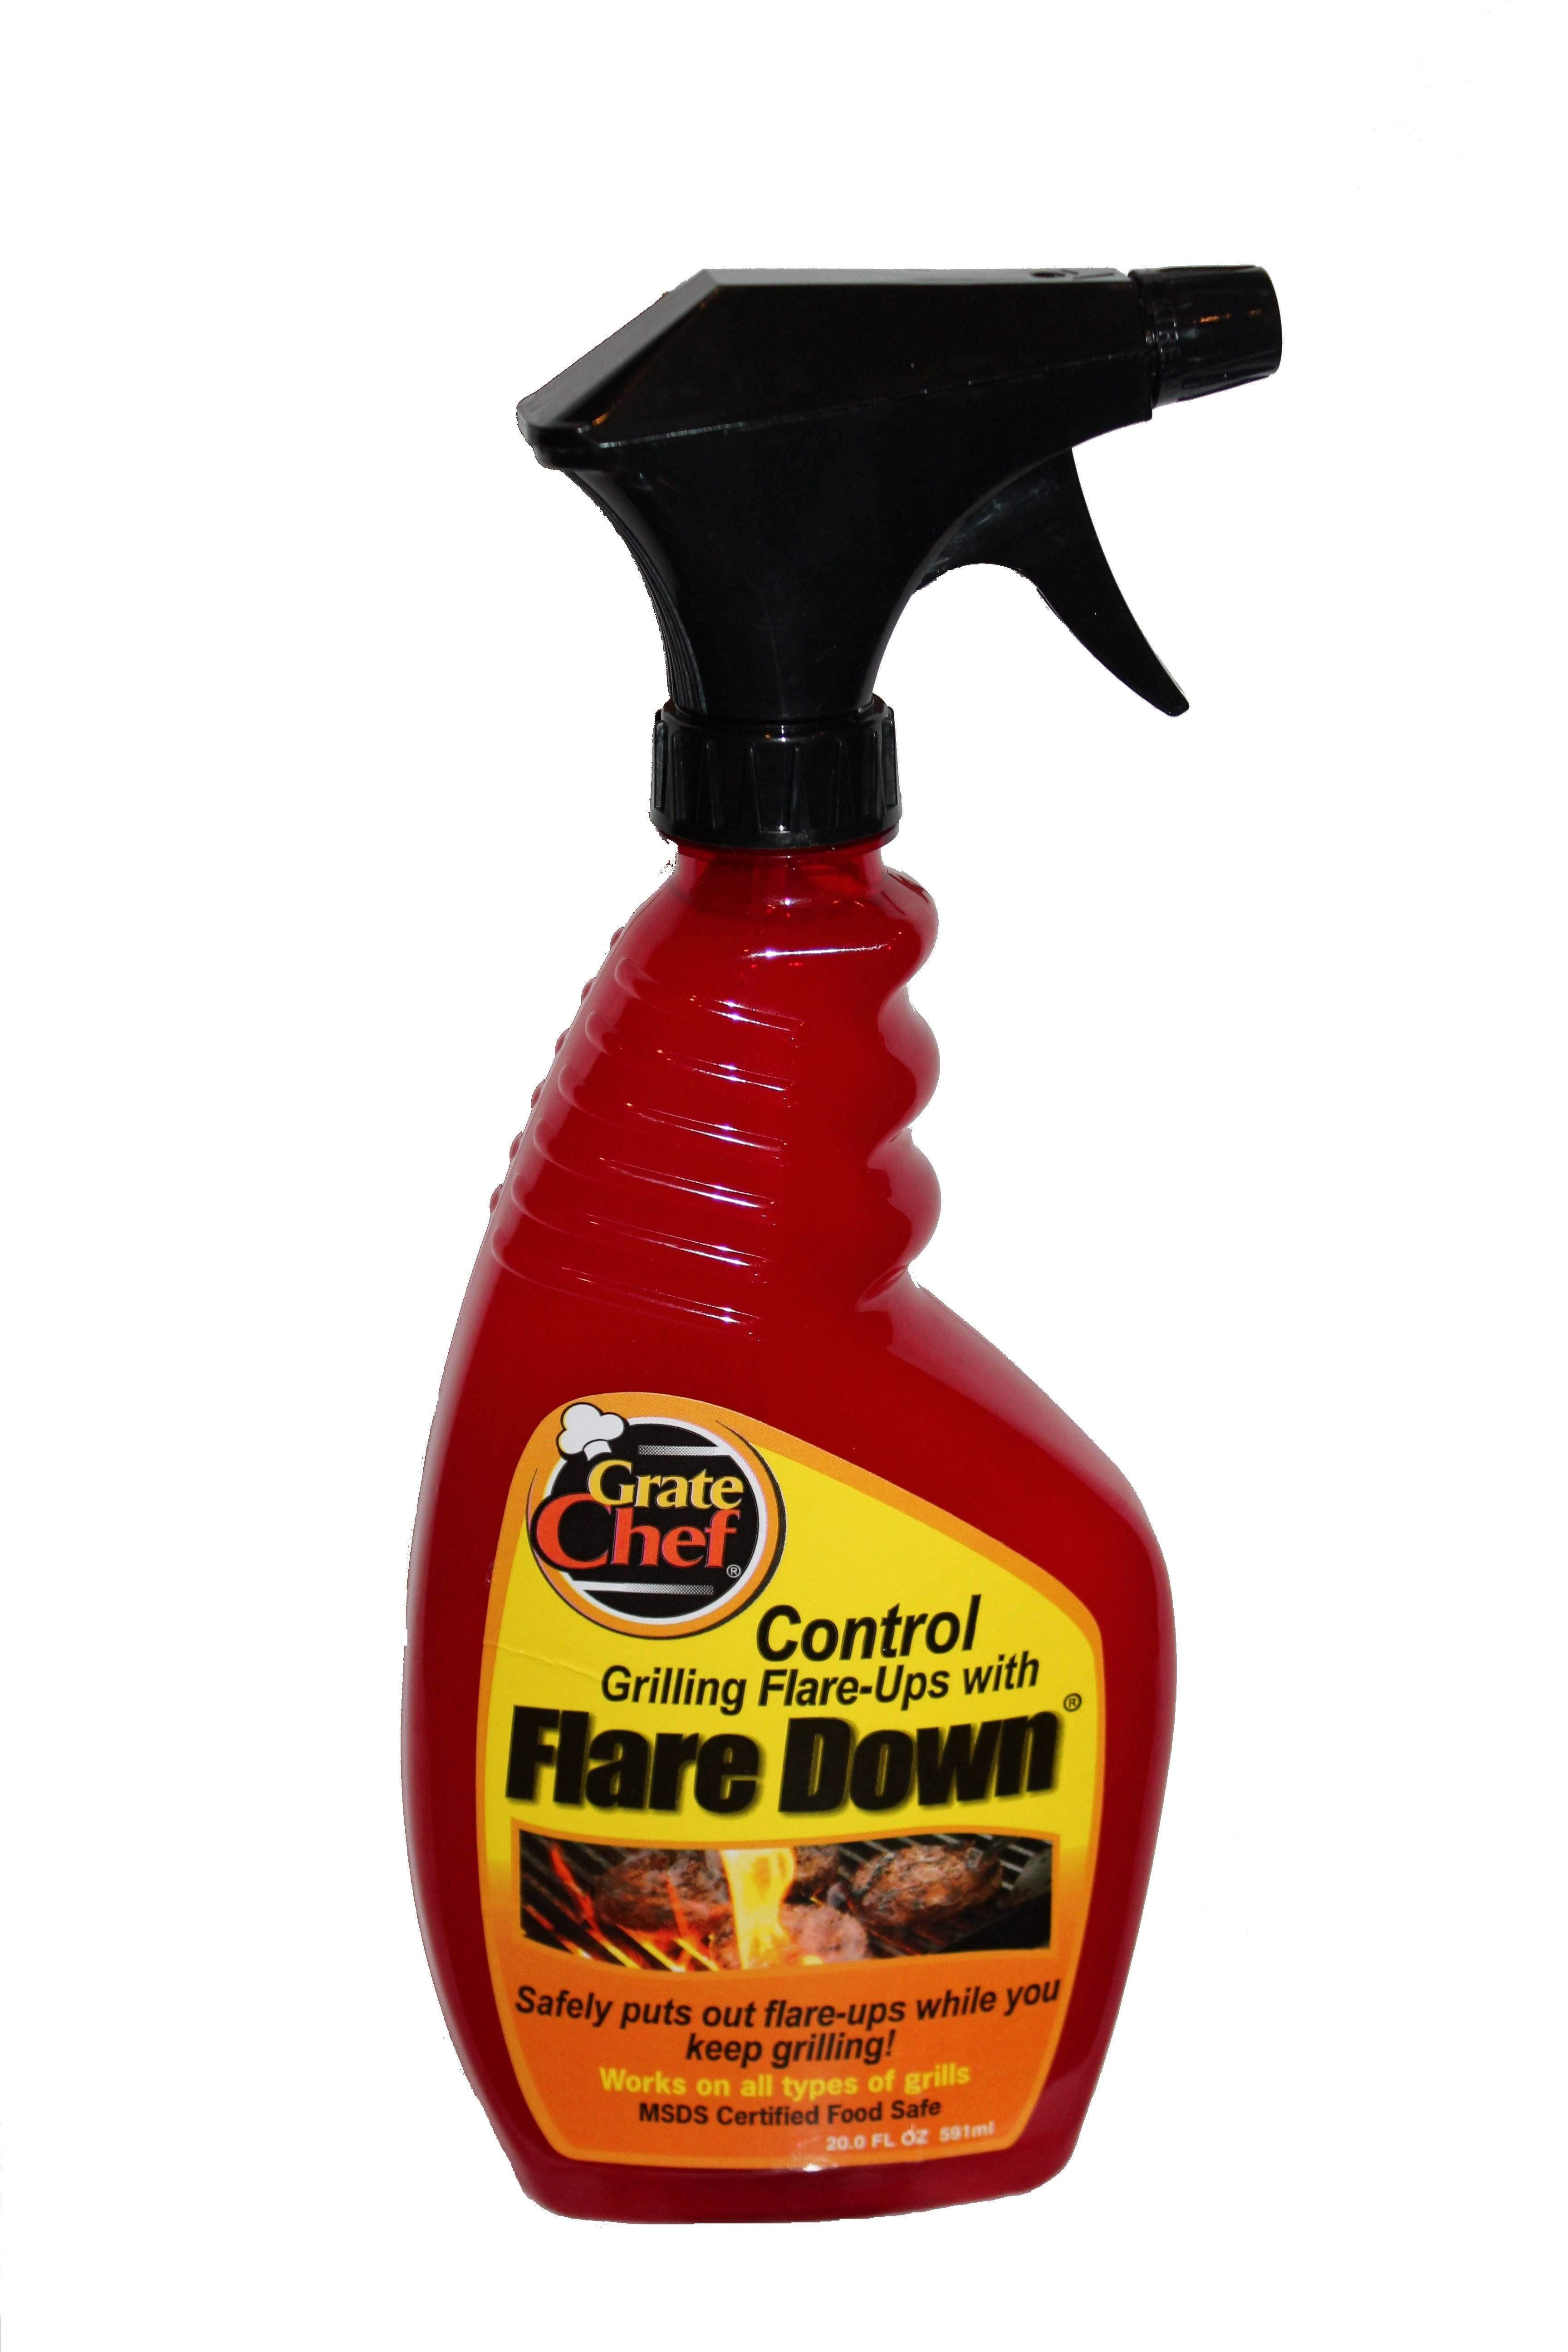 Flare Down is an all-natural and food-safe way to quash grease flare-ups in your grill.